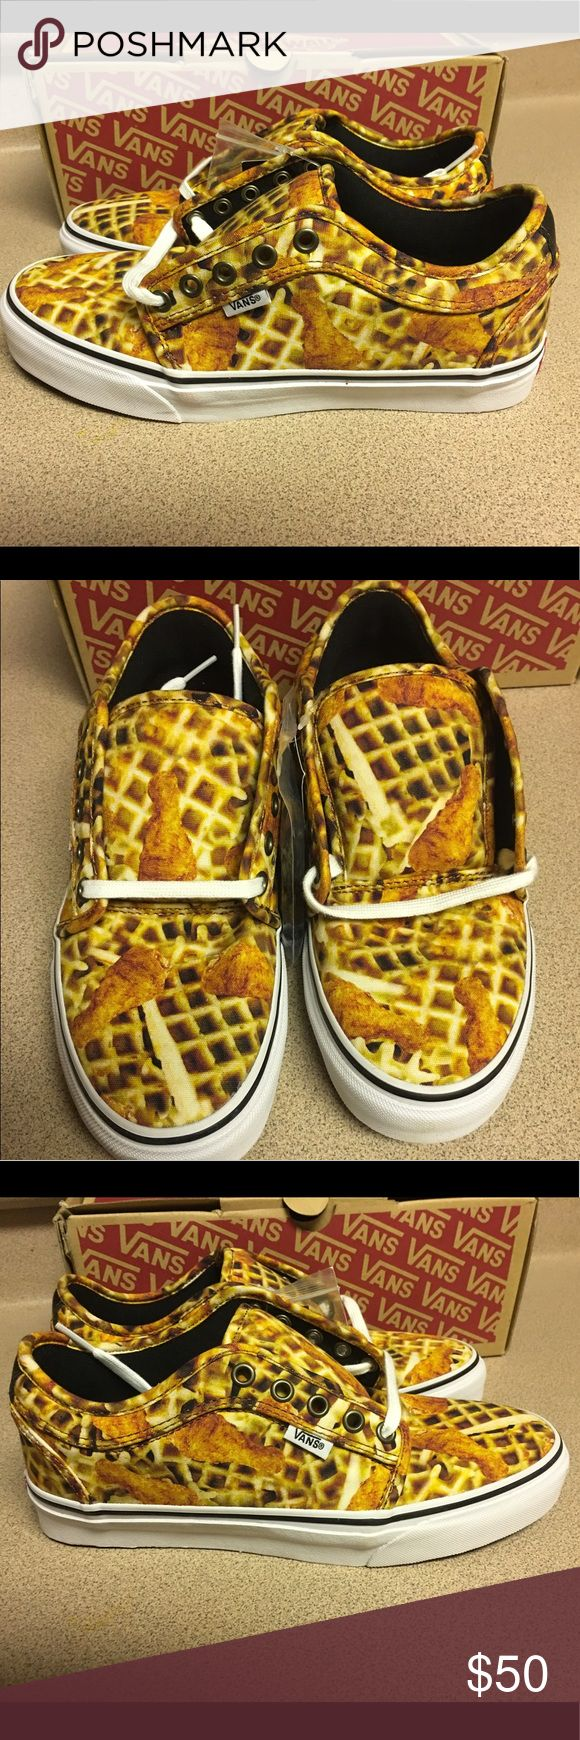 NEW VANS CHUKKA LOW CHICKEN + WAFFLES MEN'S SZ 7 VANS CHUKKA LOW CHICKEN + WAFFLES WHITE MEN'S SIZE 7 NEW IN BOX Vans Shoes Sneakers